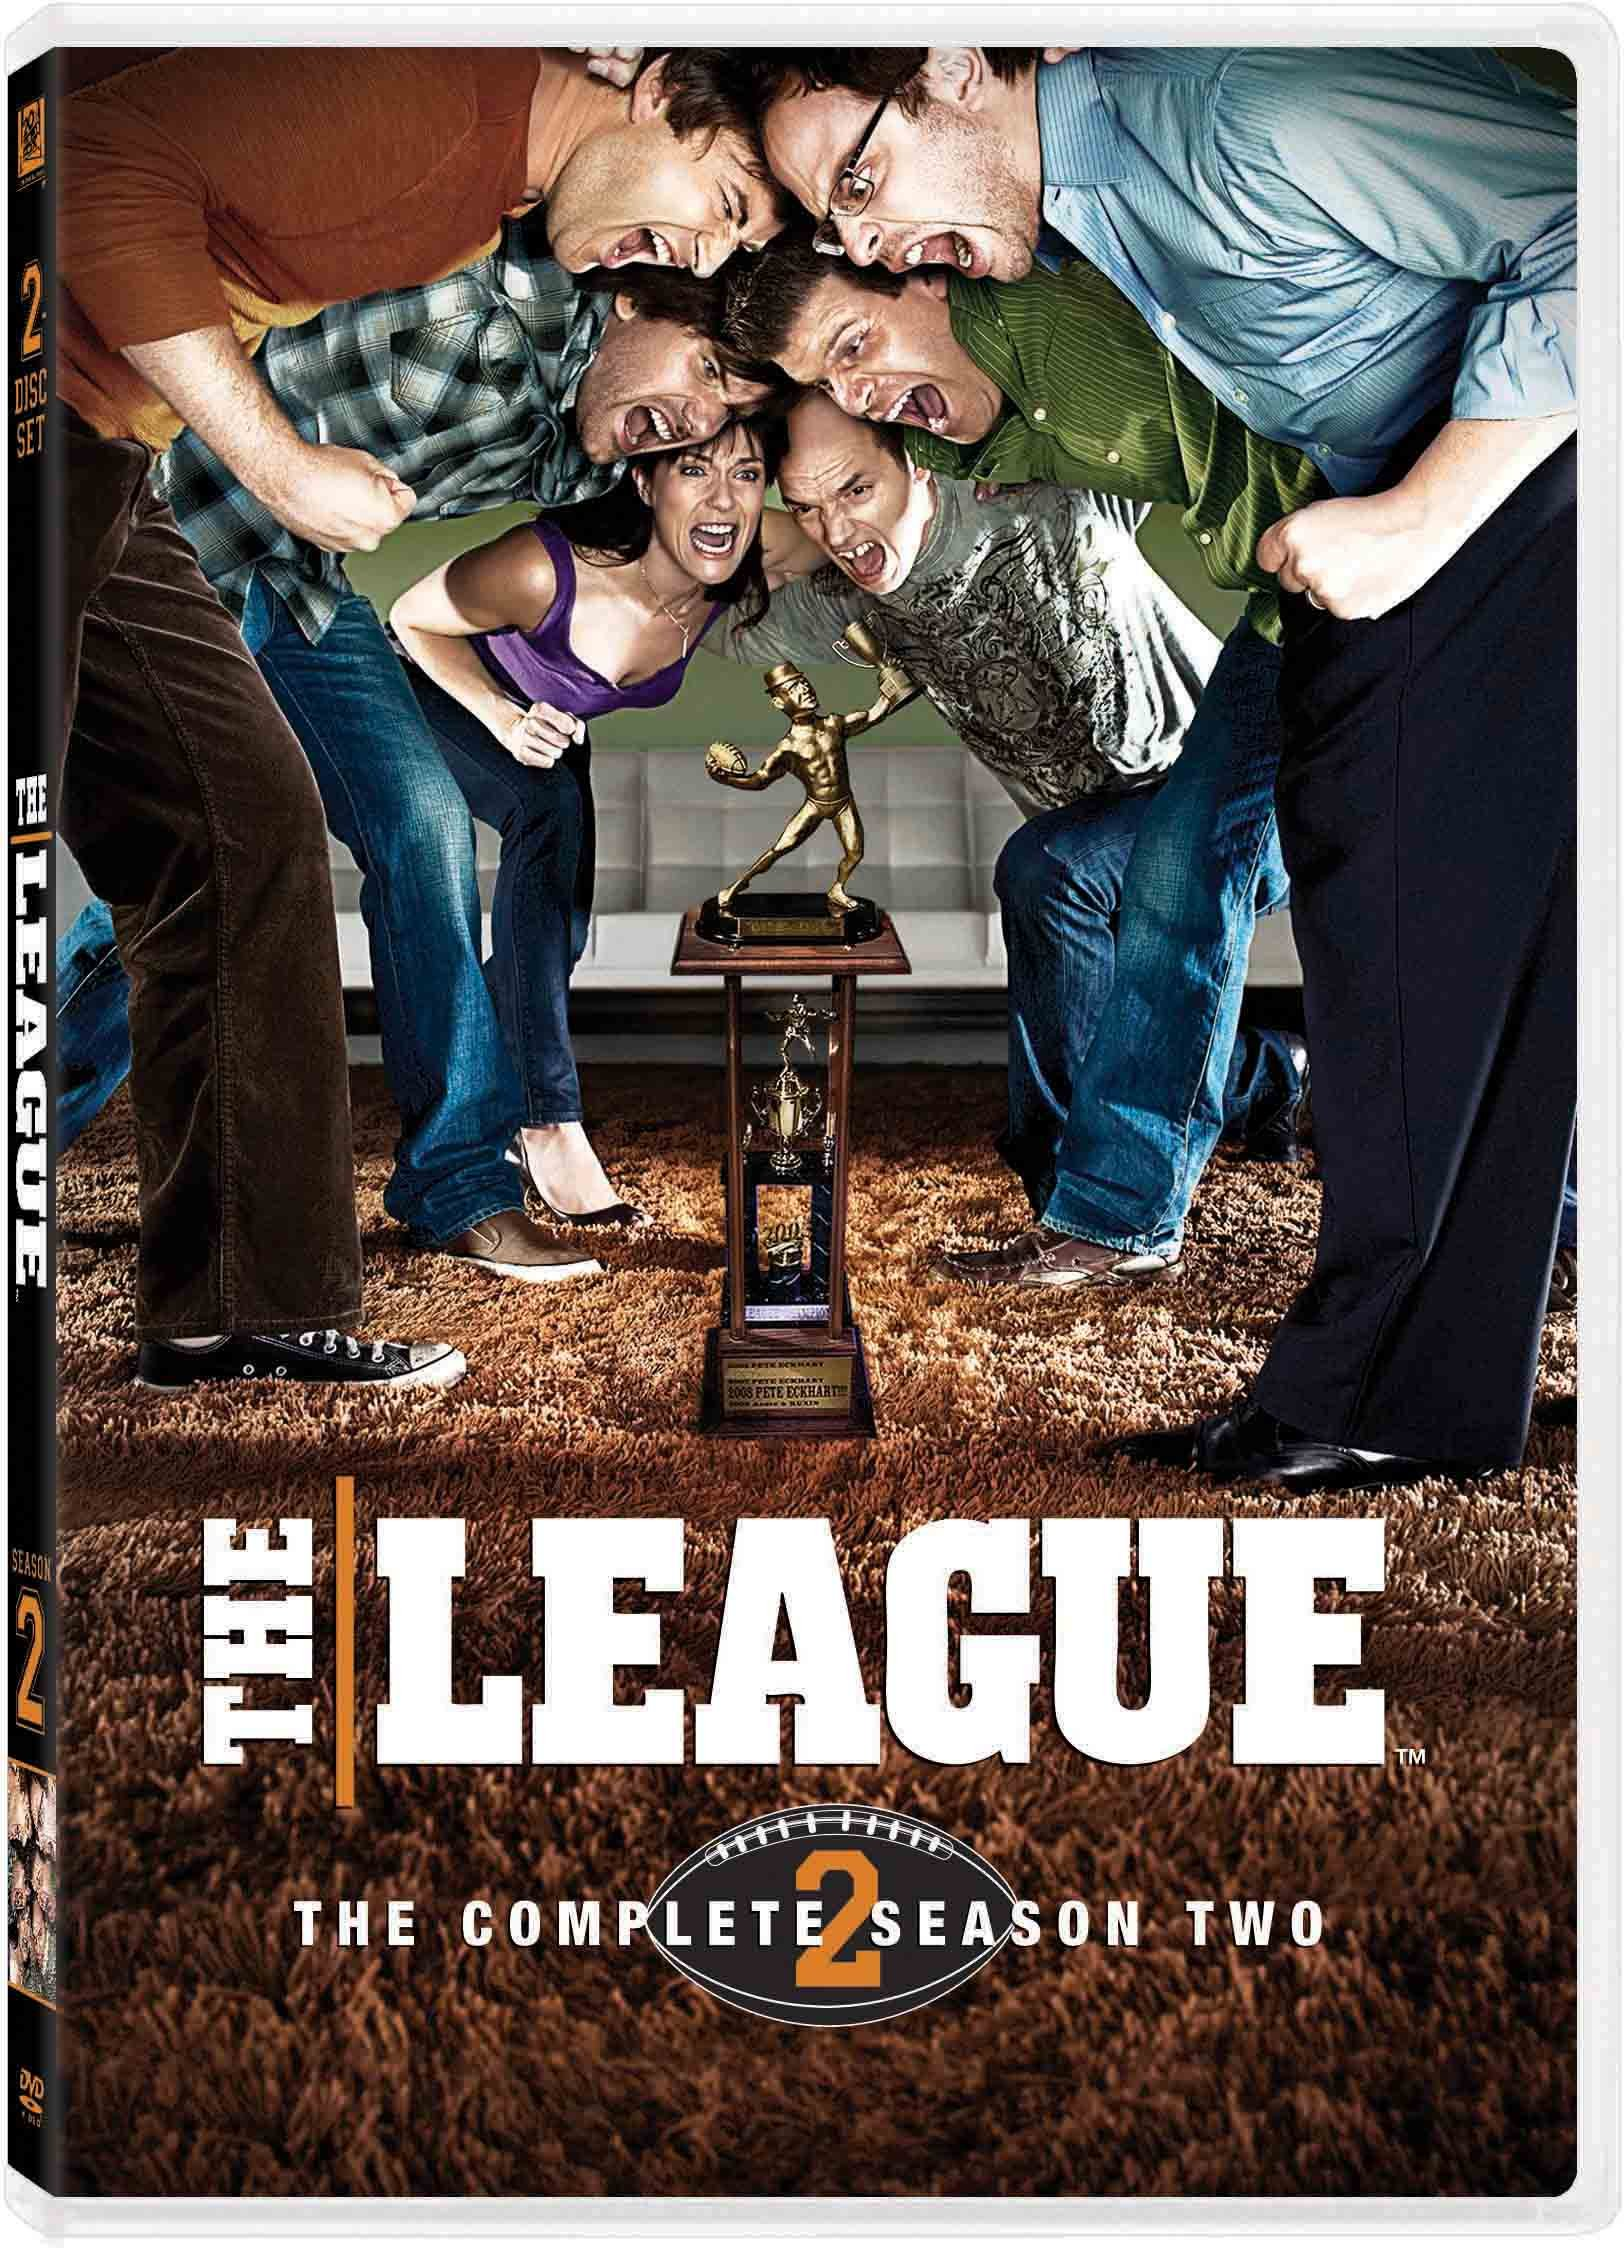 The League: The Complete Season Two (Dolby, AC-3, Subtitled, Widescreen, 2PC)